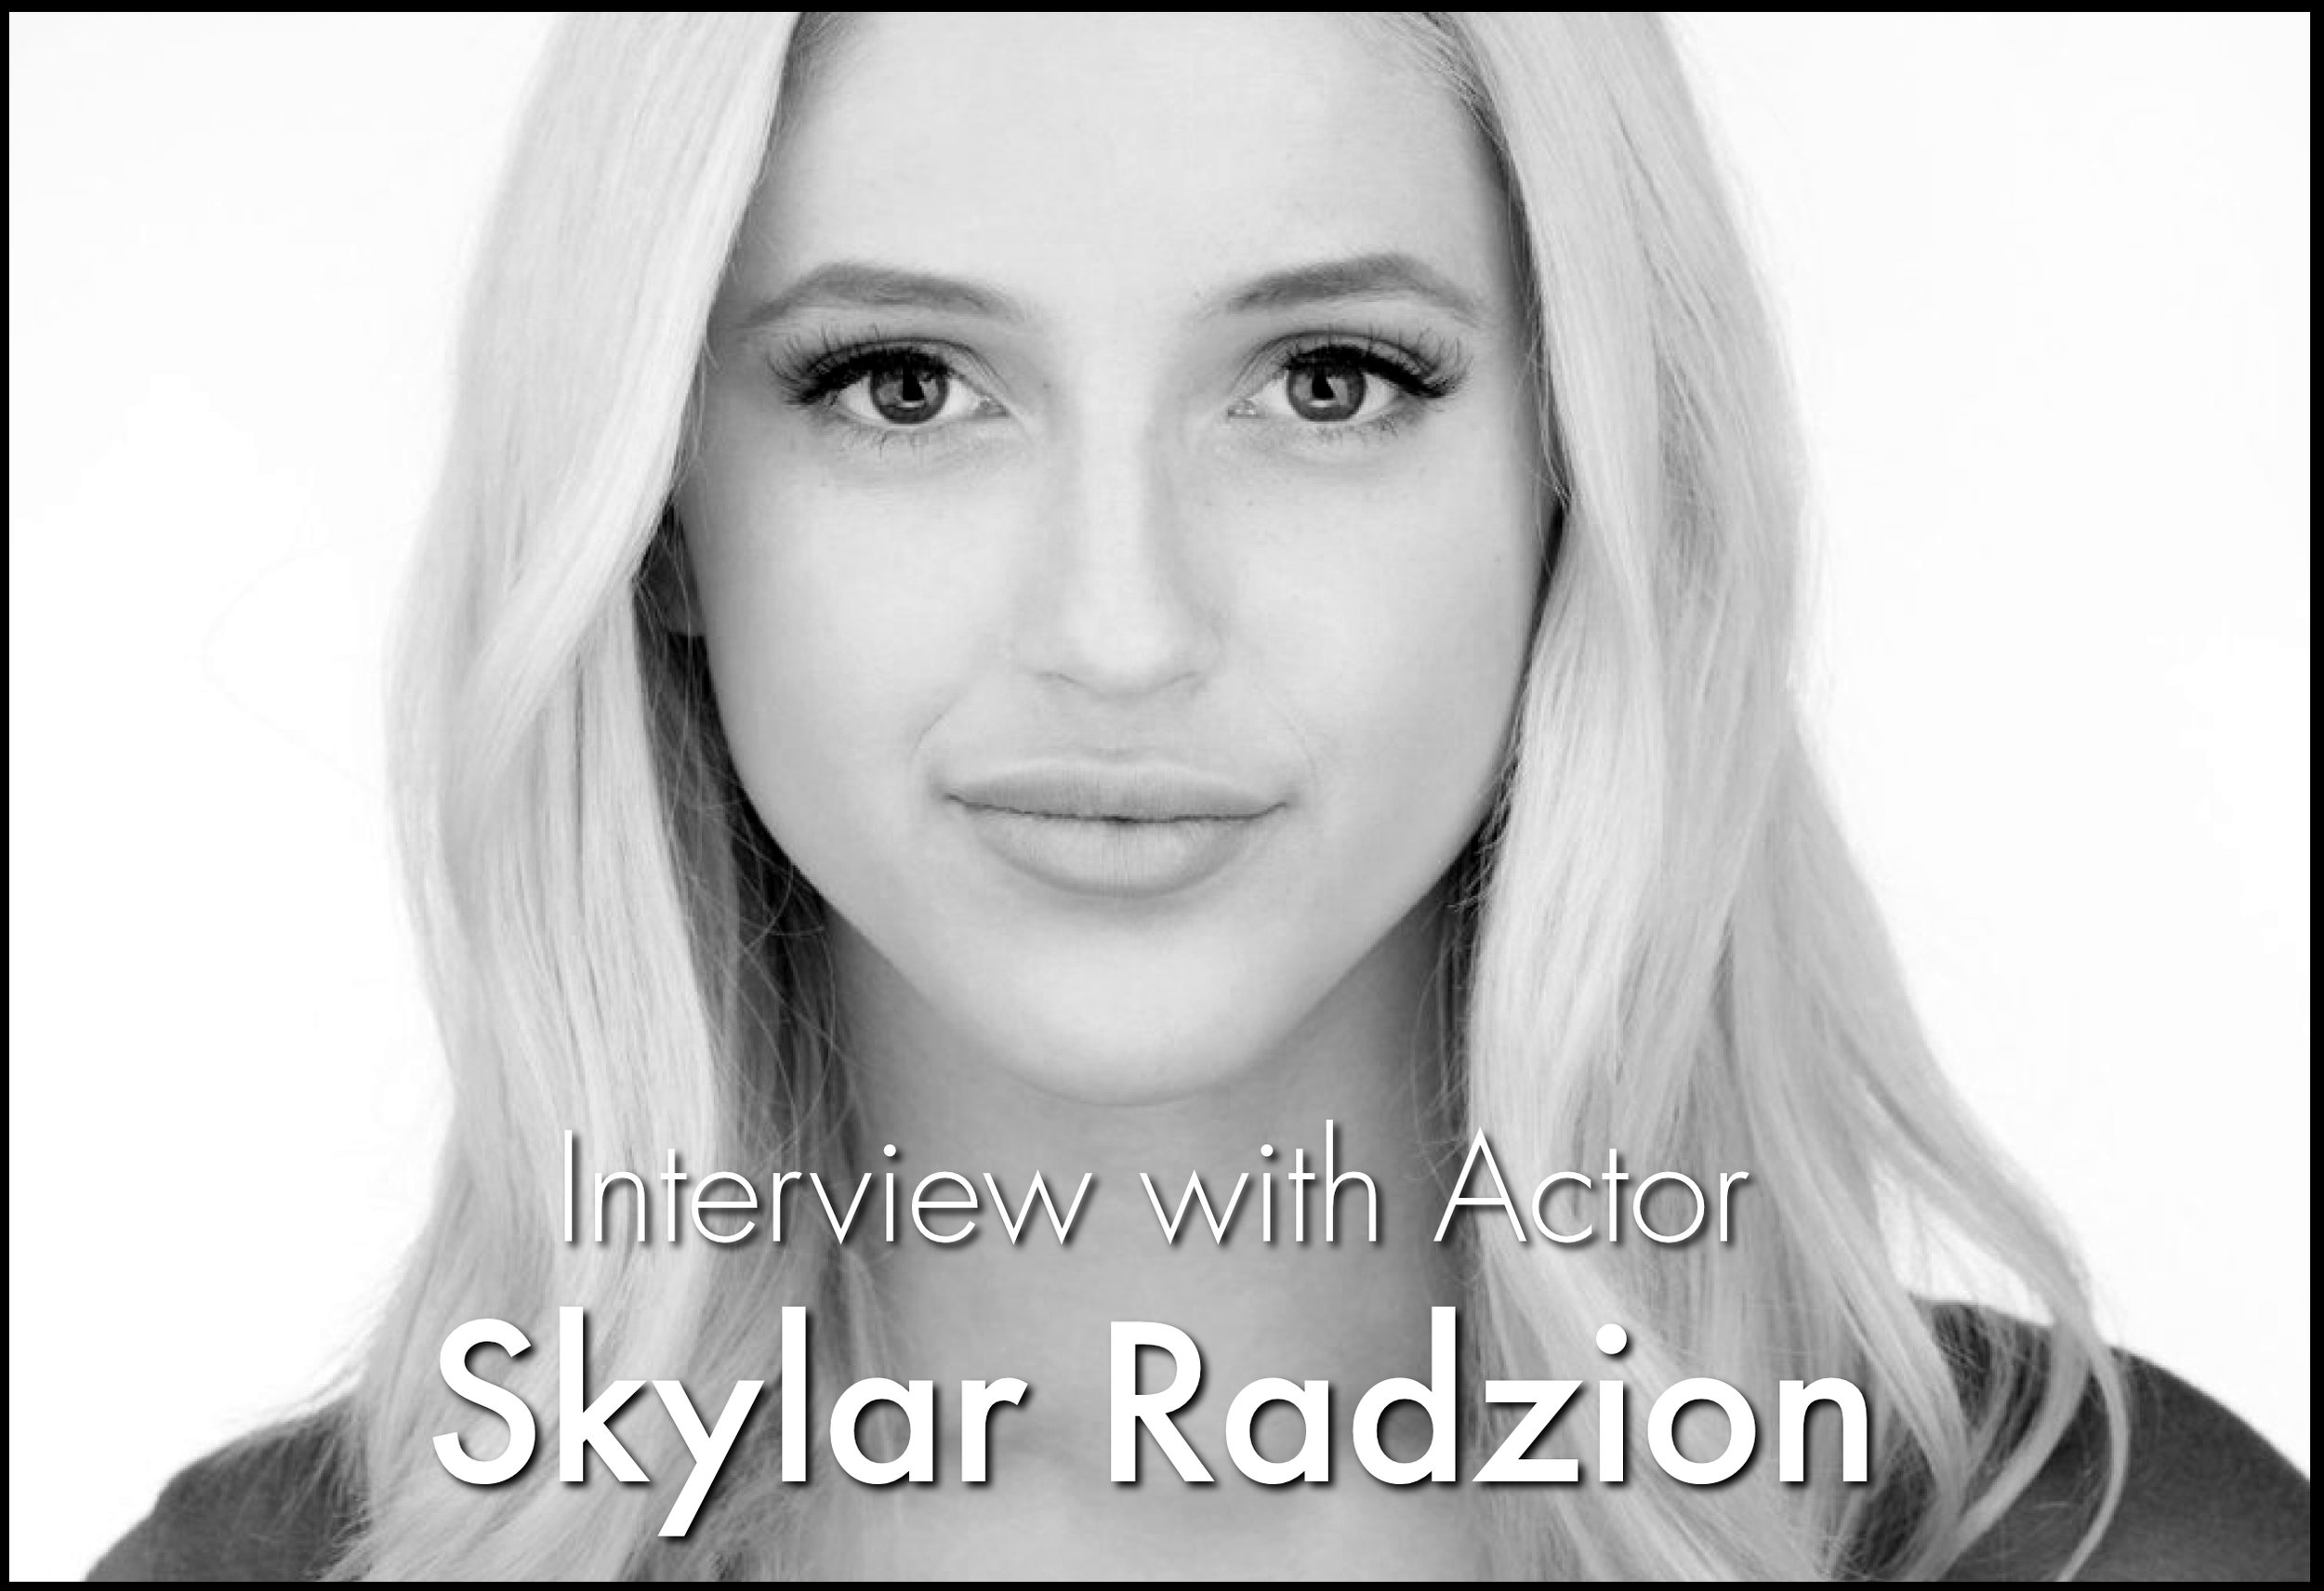 skylar interview.jpg